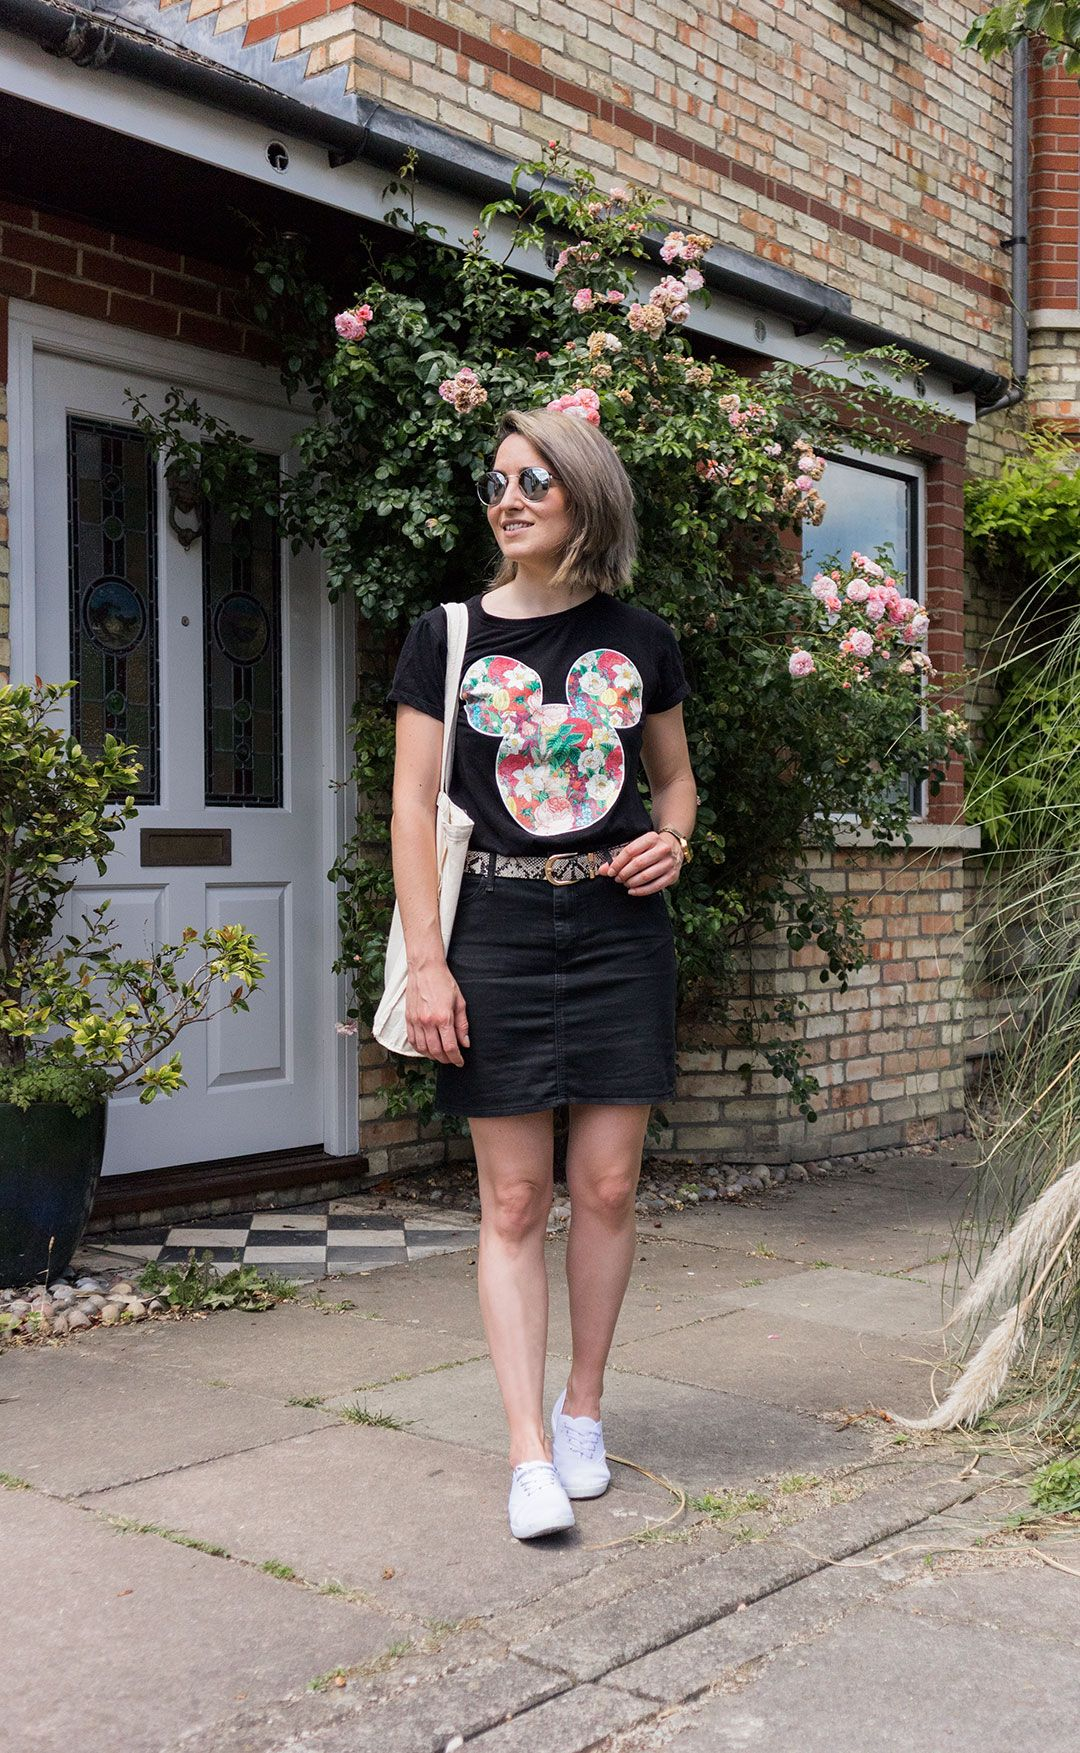 Printed Disney tee - another way to floral print! | Black mini skirt | Canvas bag and shoes | She talks Glam | 10 things I have done in my 6 months as blogger